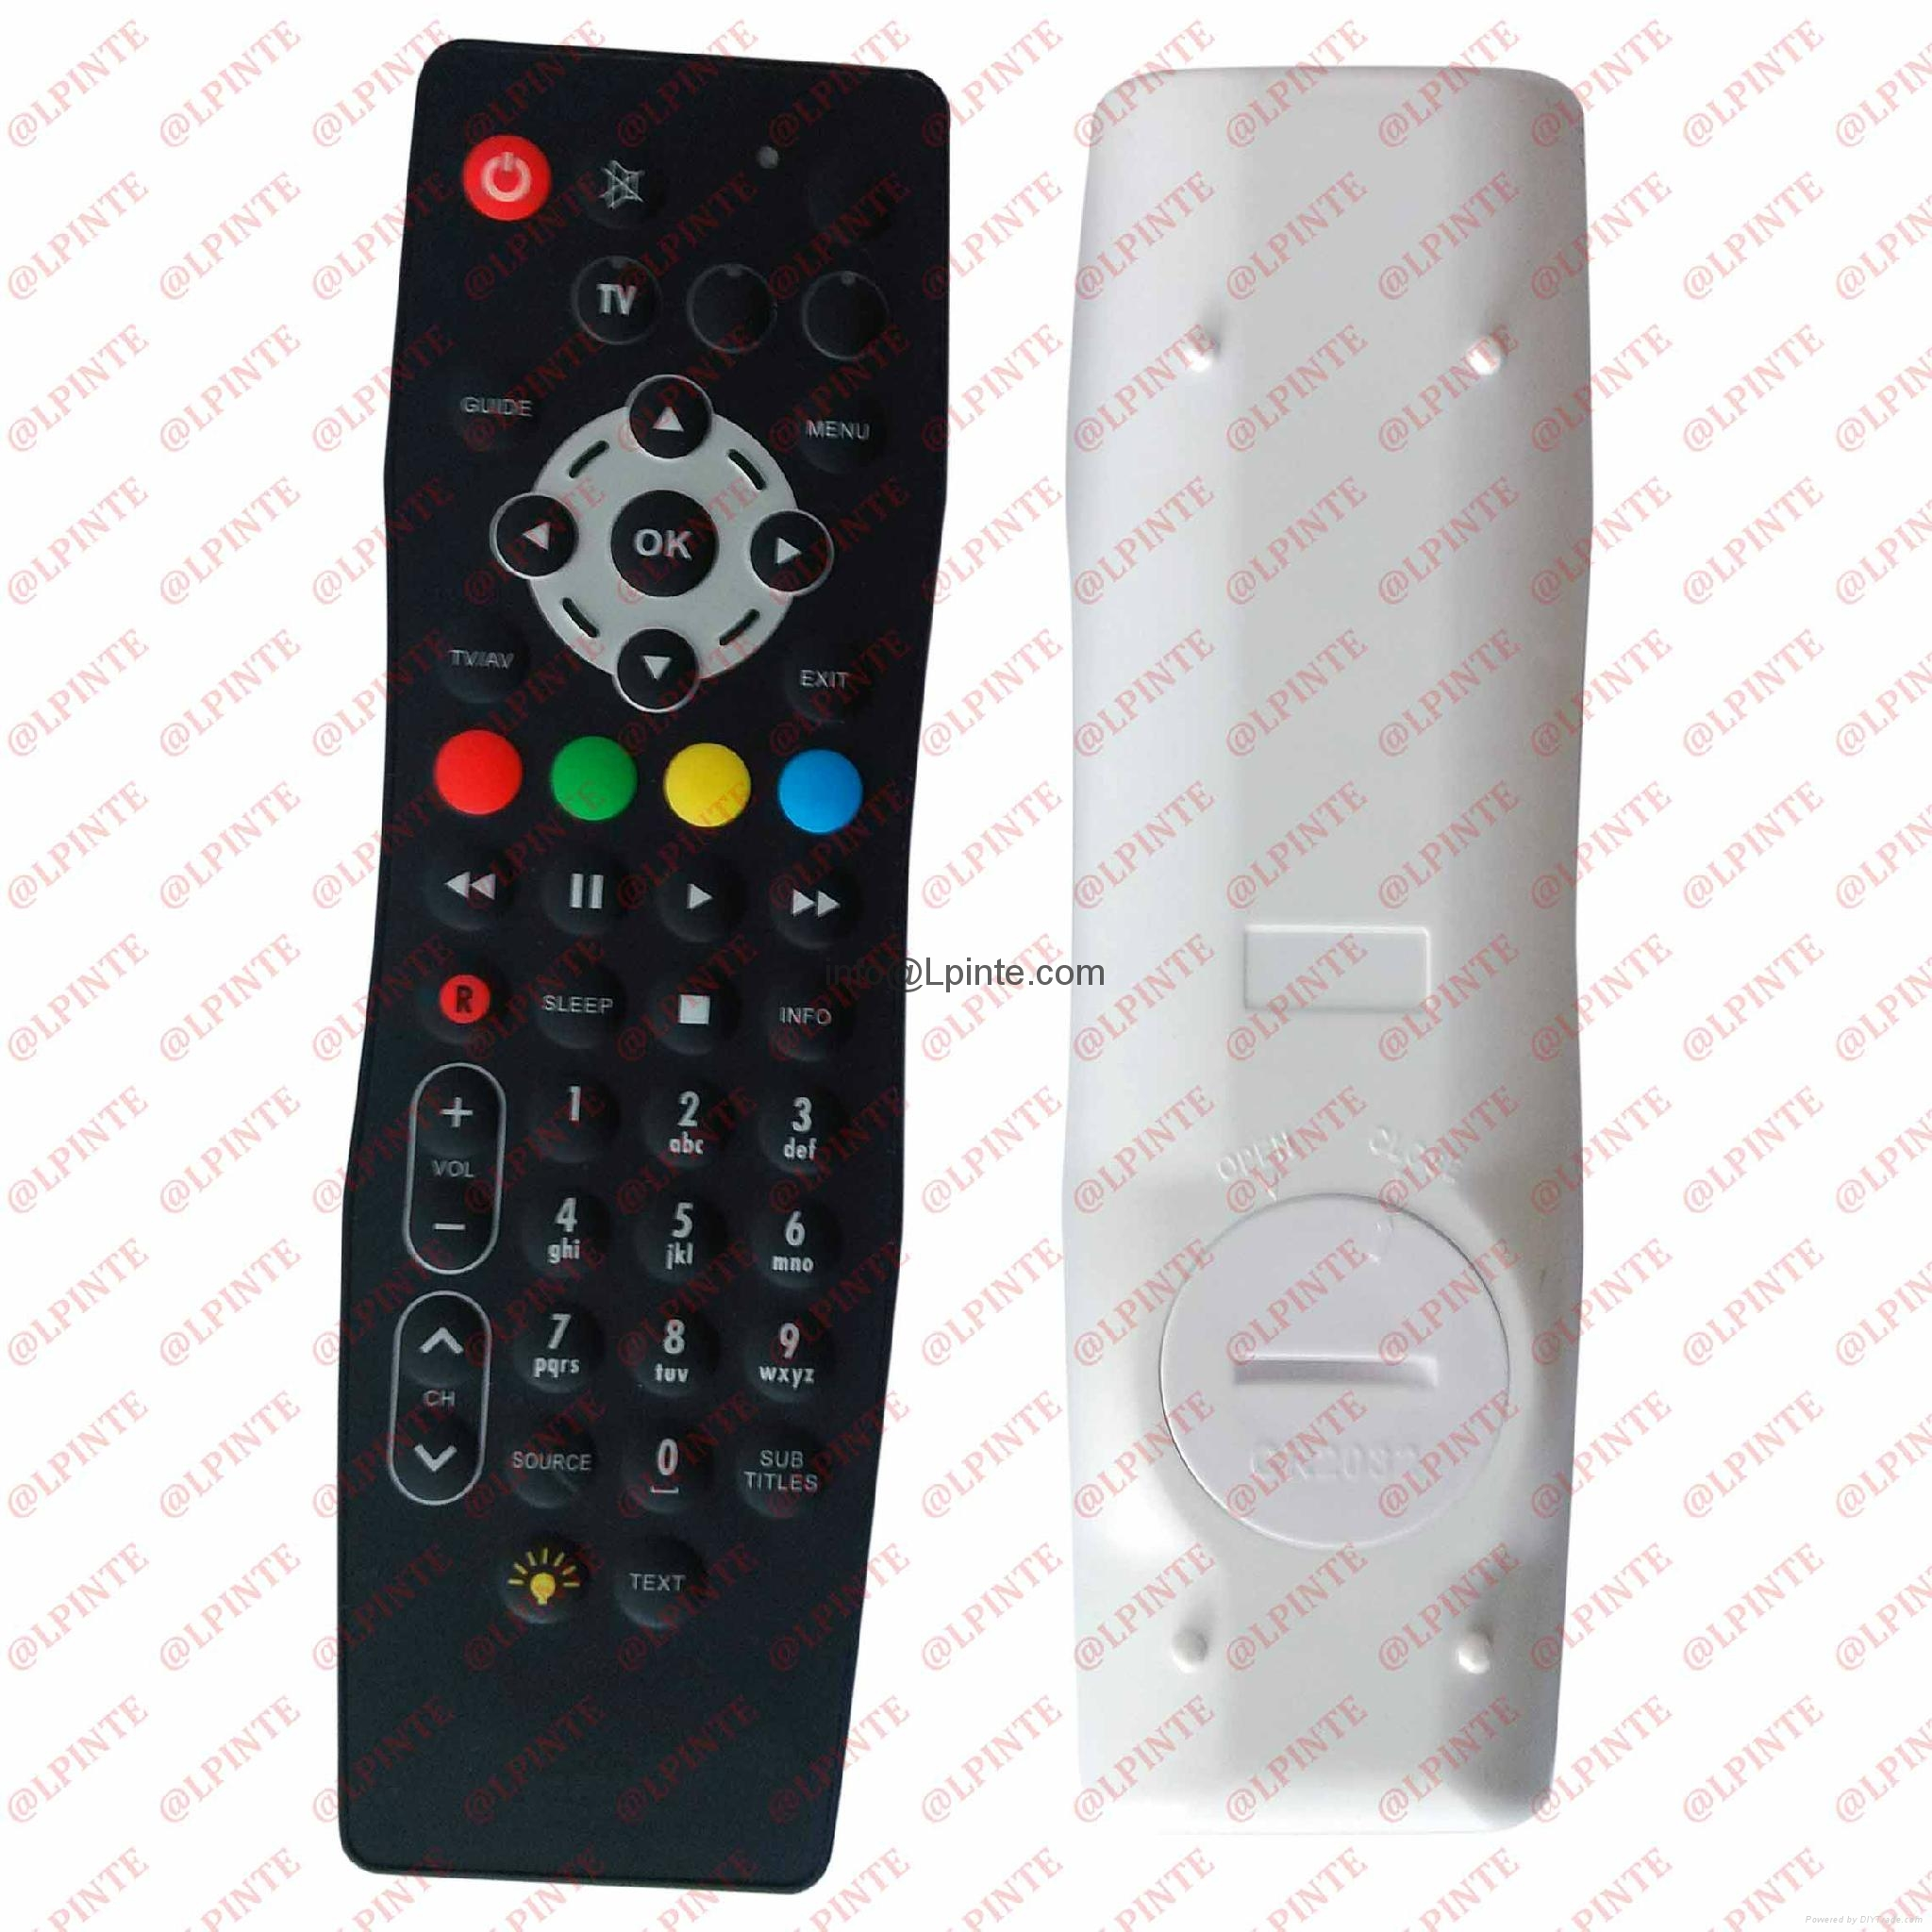 waterproof remote control LPI-W053 for hotel tv mirror tv hidden tv android box  2